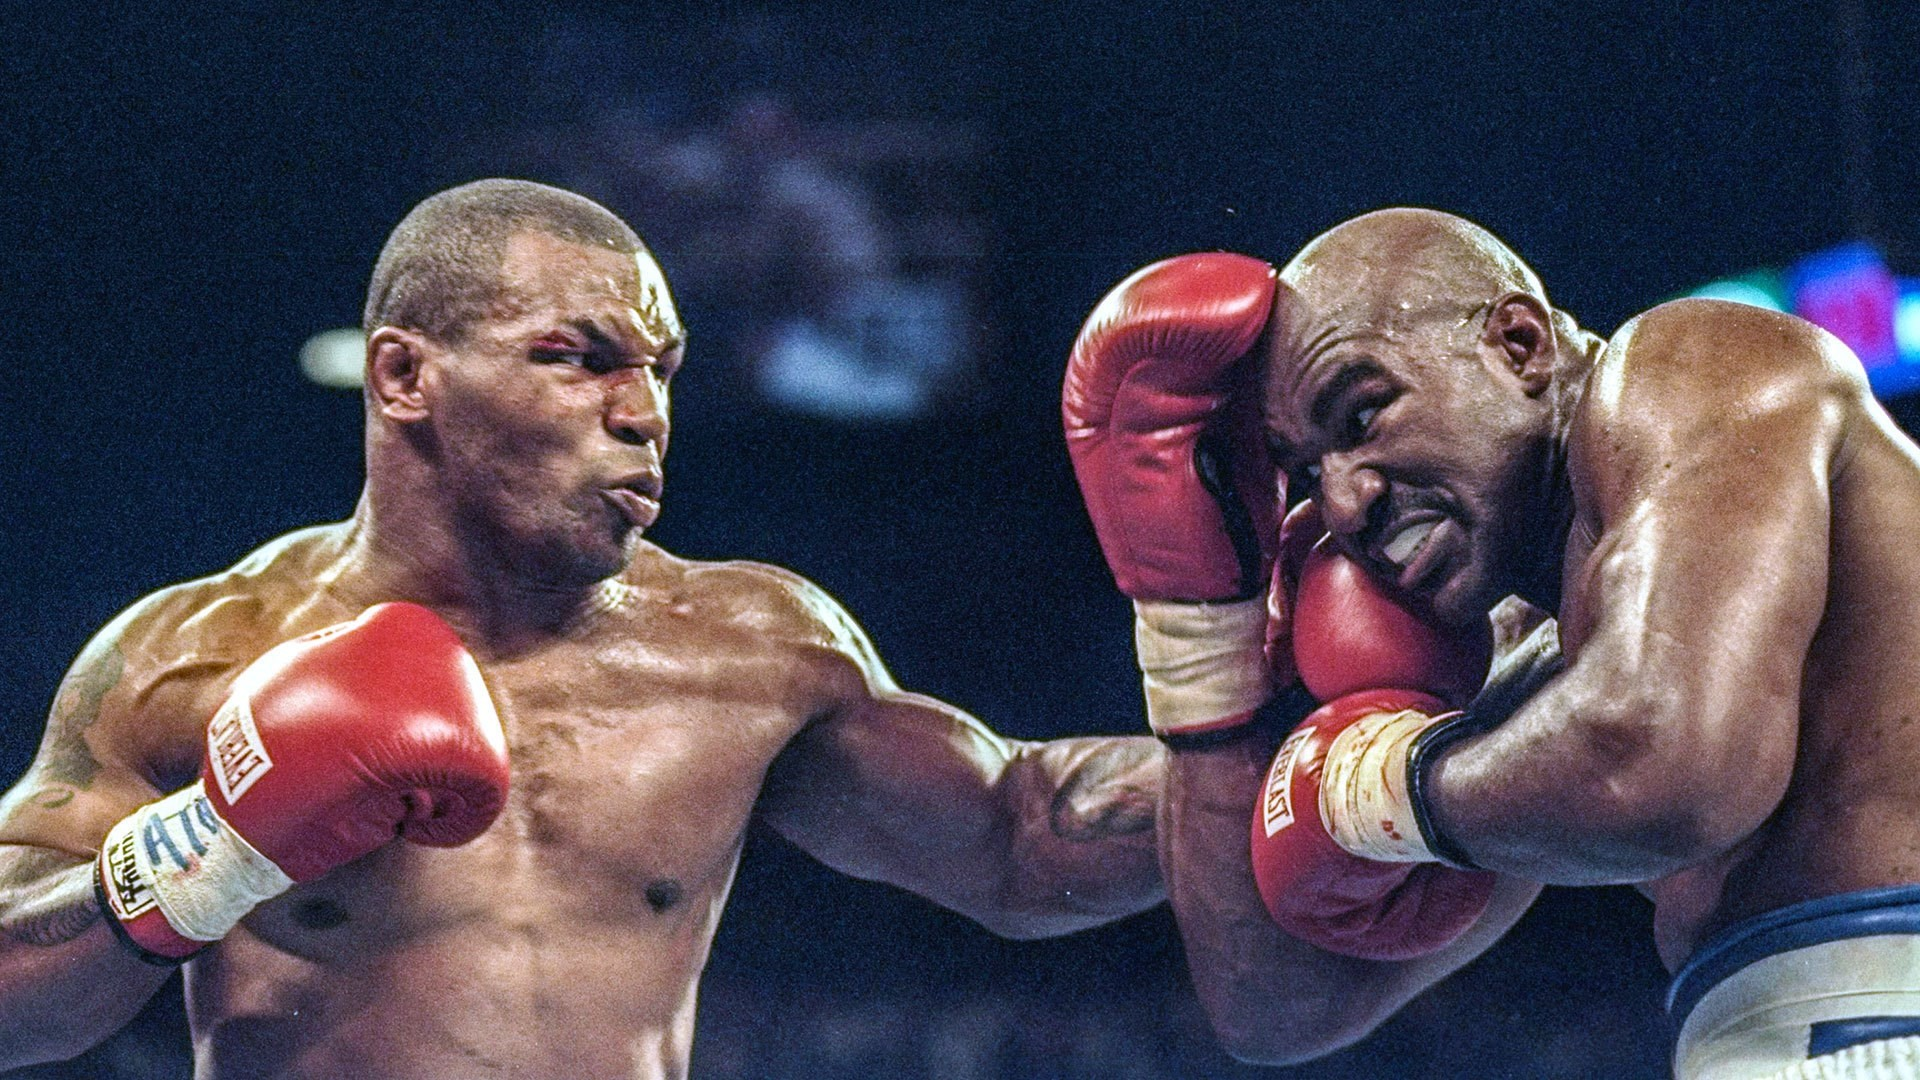 1920x1080 - Mike Tyson Wallpapers 30